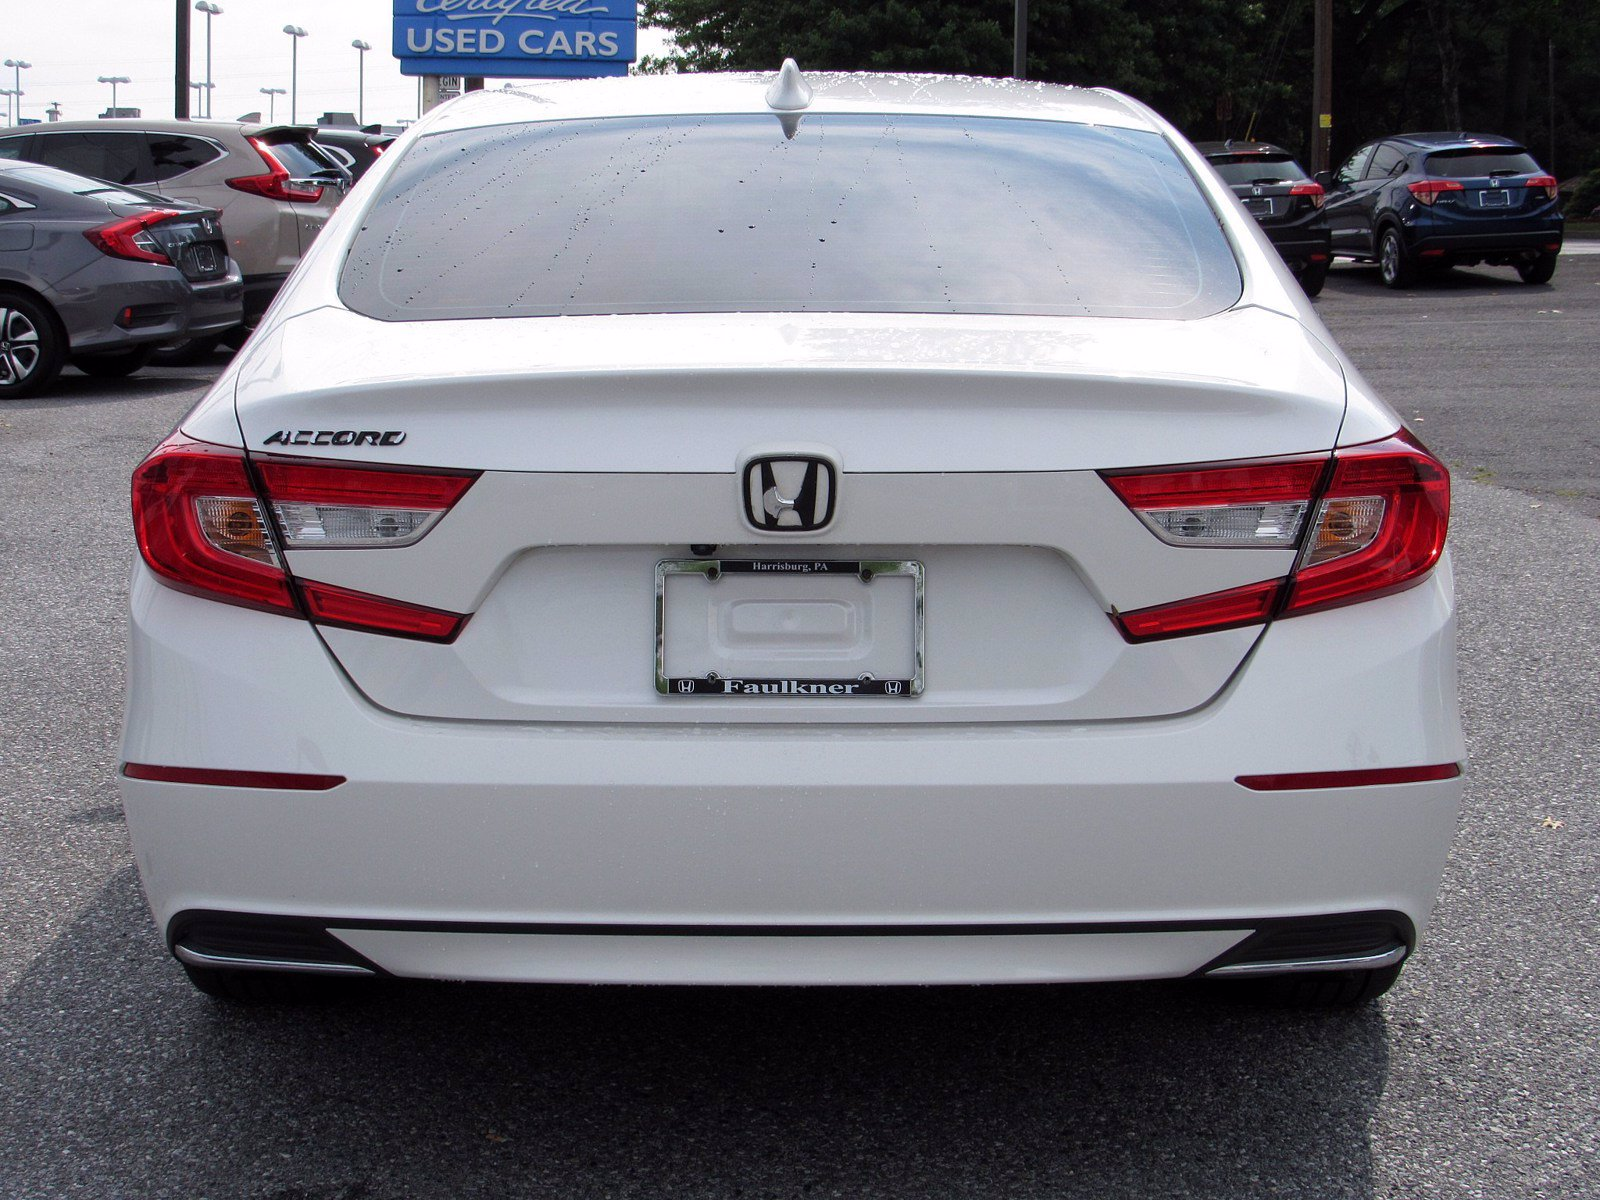 Pre-Owned 2018 Honda Accord Sedan LX 1.5T